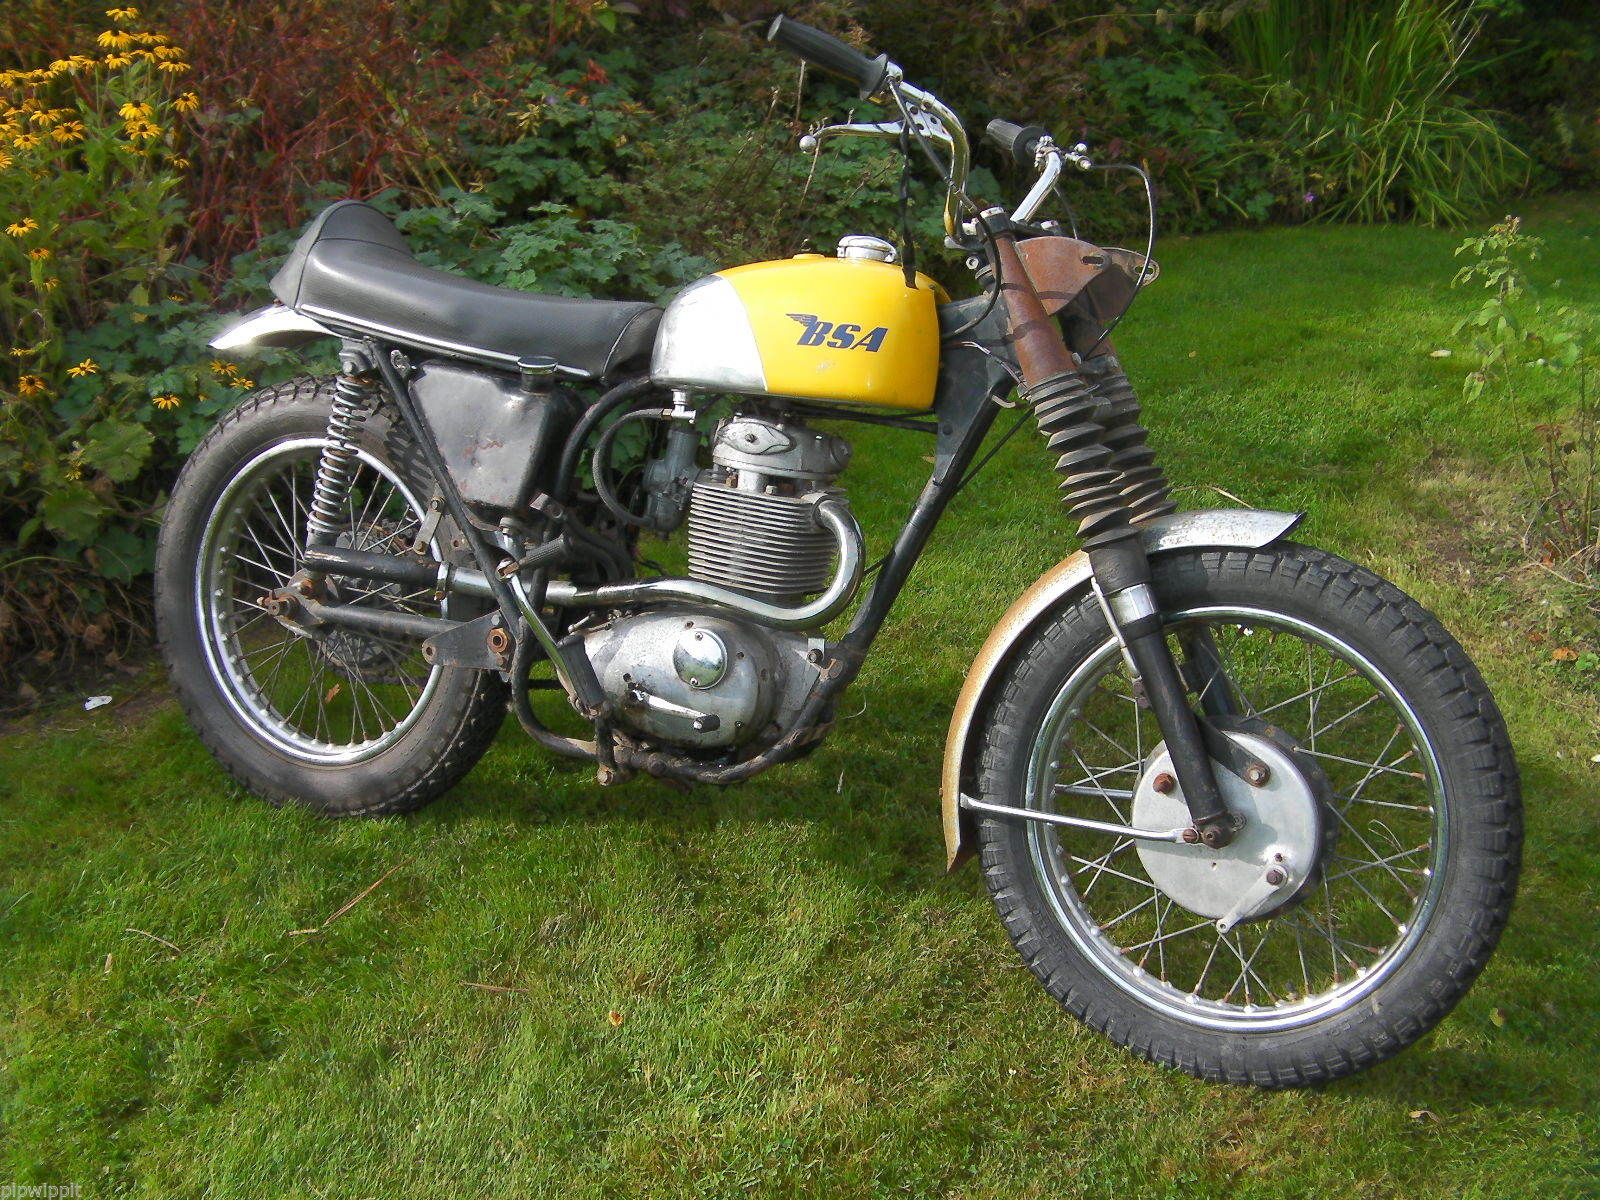 Bsa B44 Vs Twin Shock Motocross Restoration Project